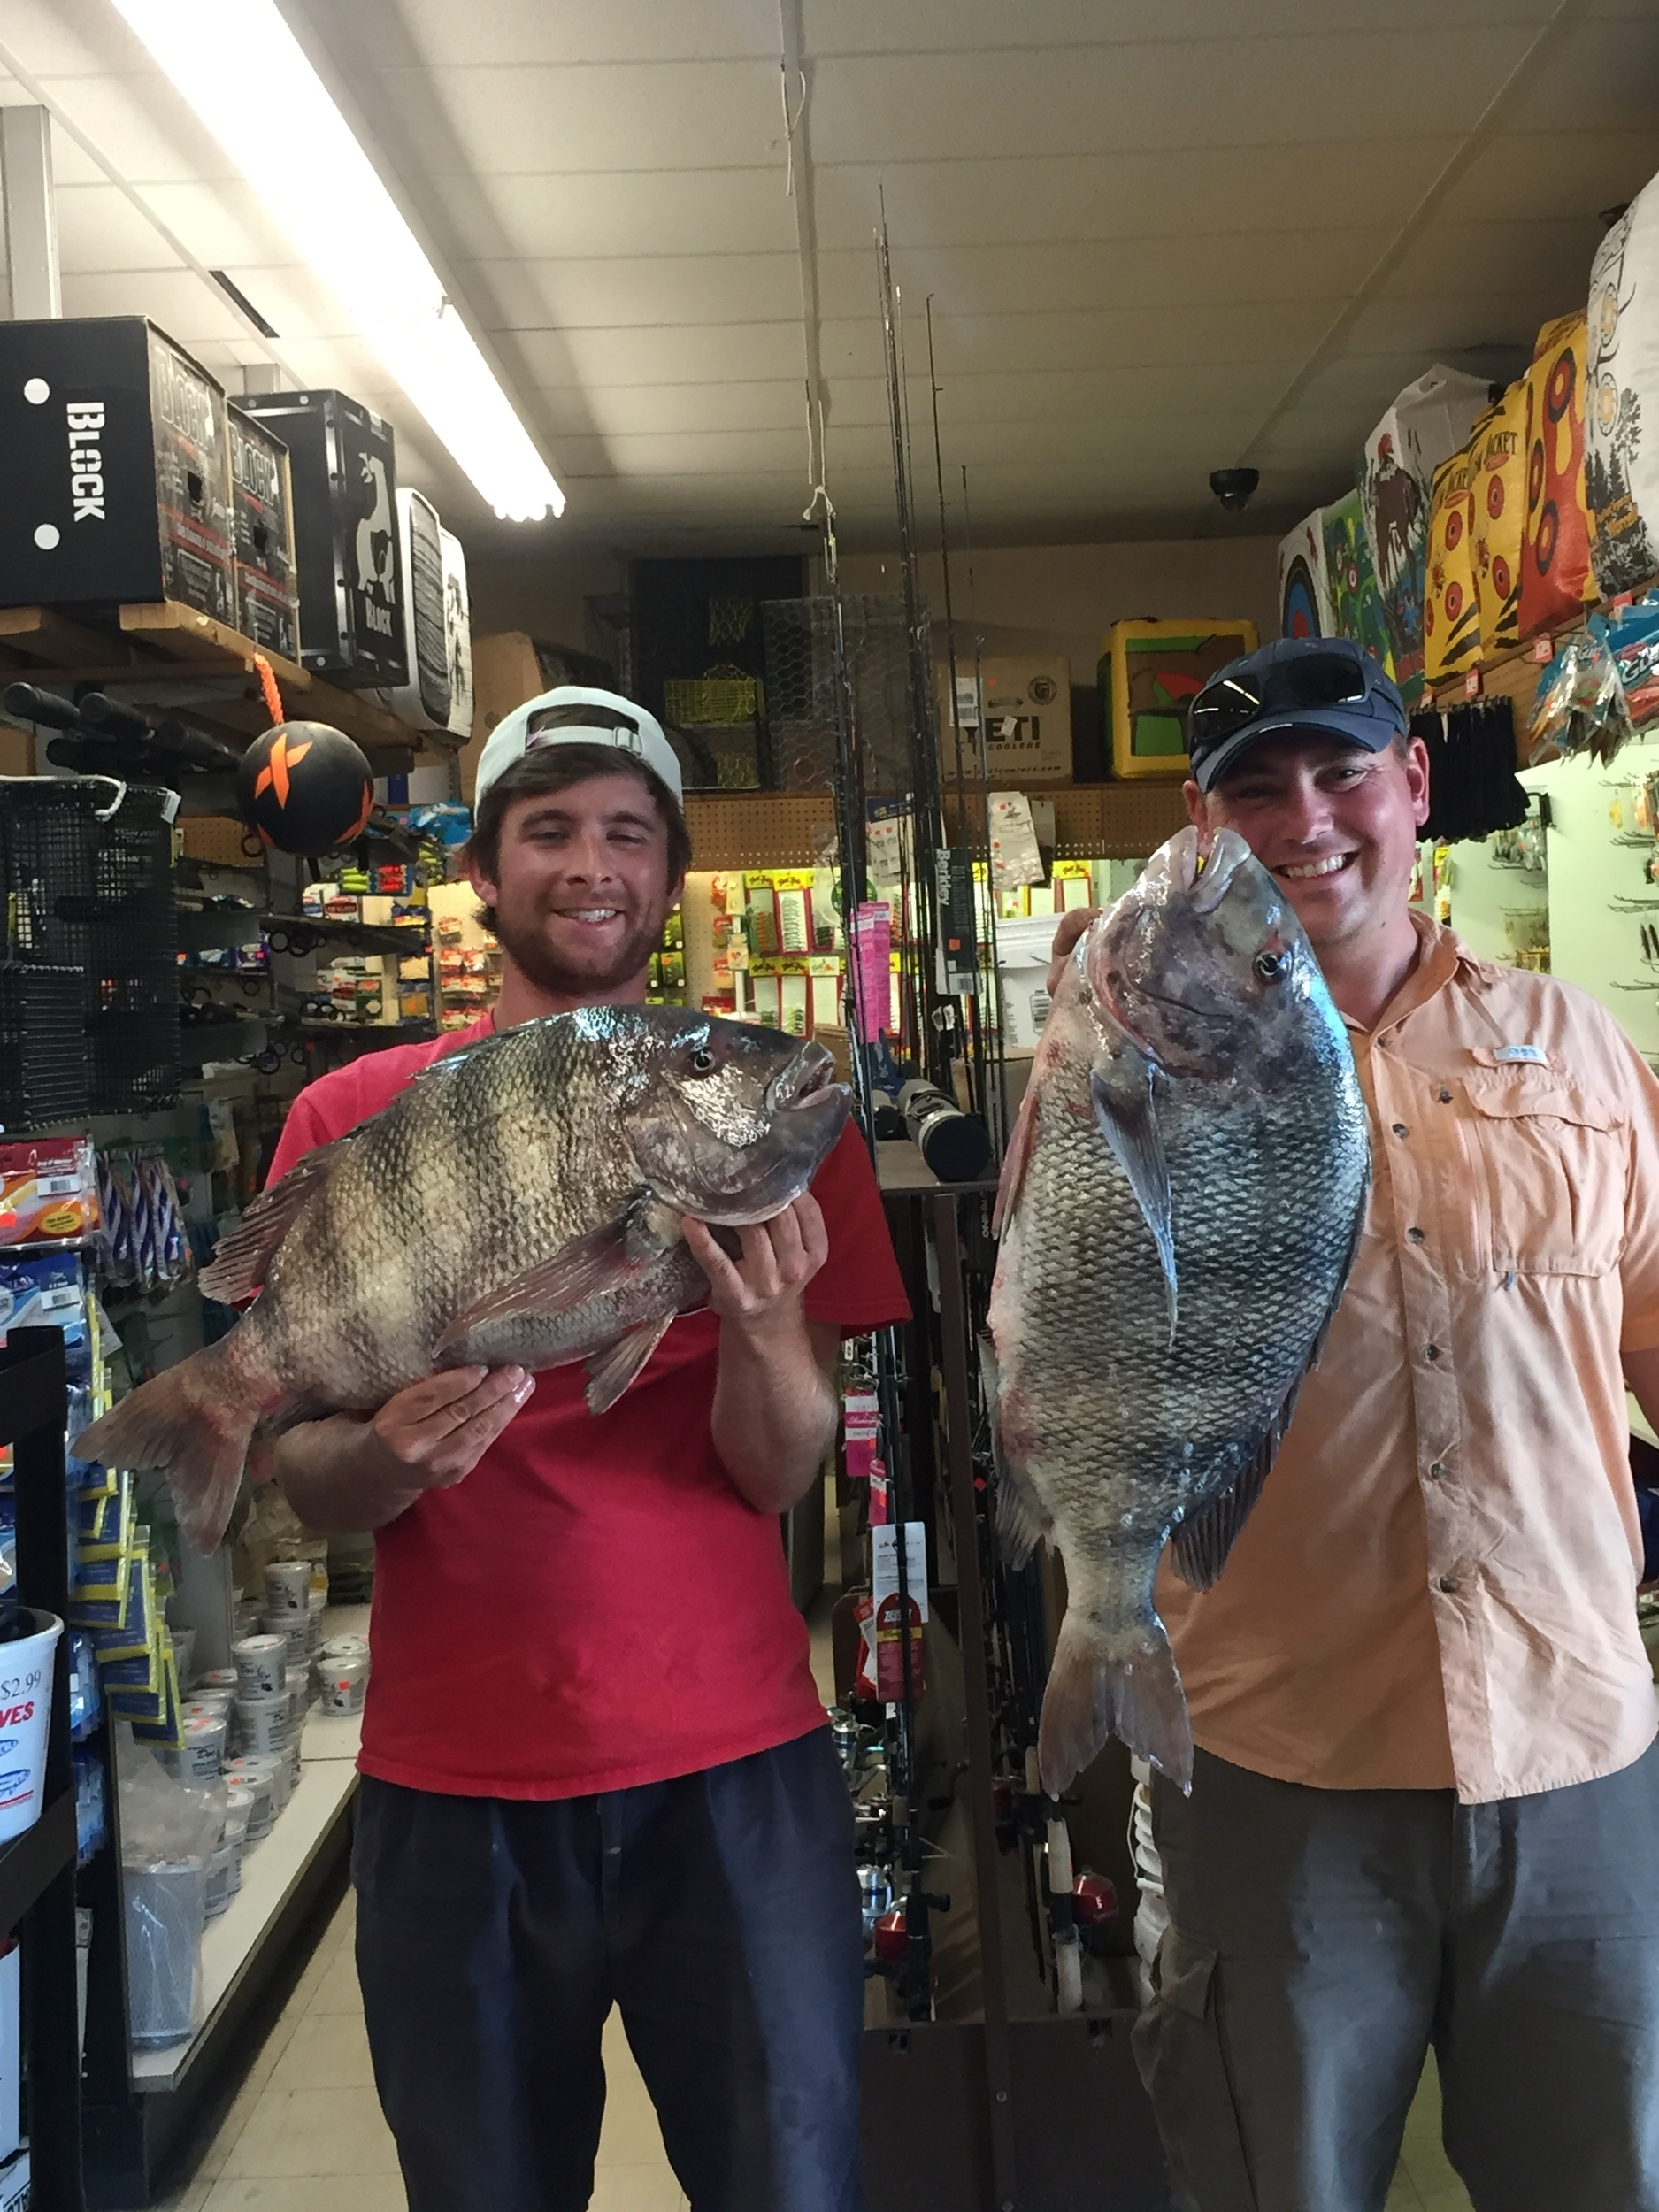 2 sheephead citations caught by Alexander Neal 13lbs 8oz and Dave Leslie 10lbs 4oz in the CBBT. Congrats guys!